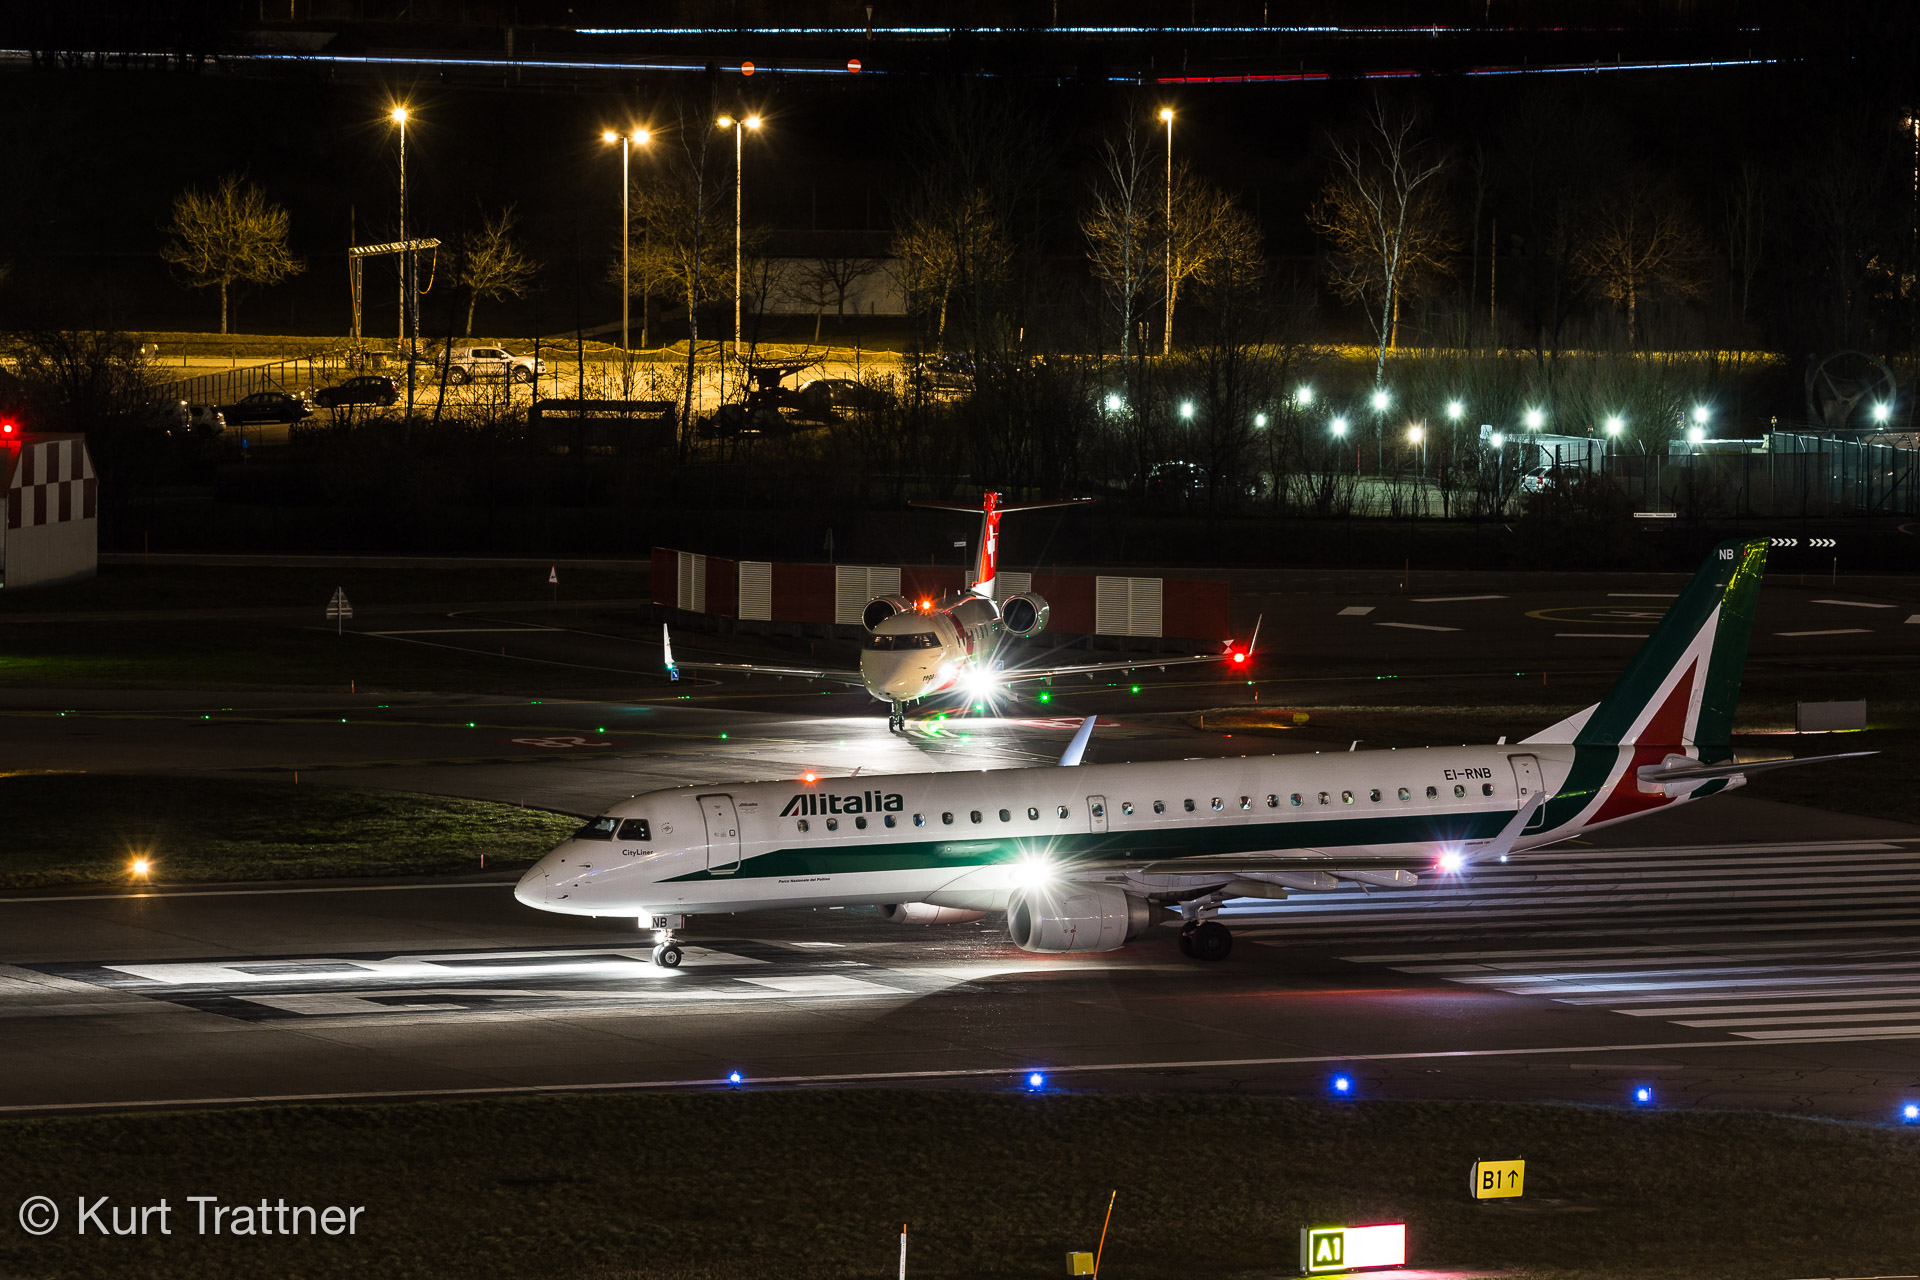 HB-JRA at LSZH on 26.01.2018